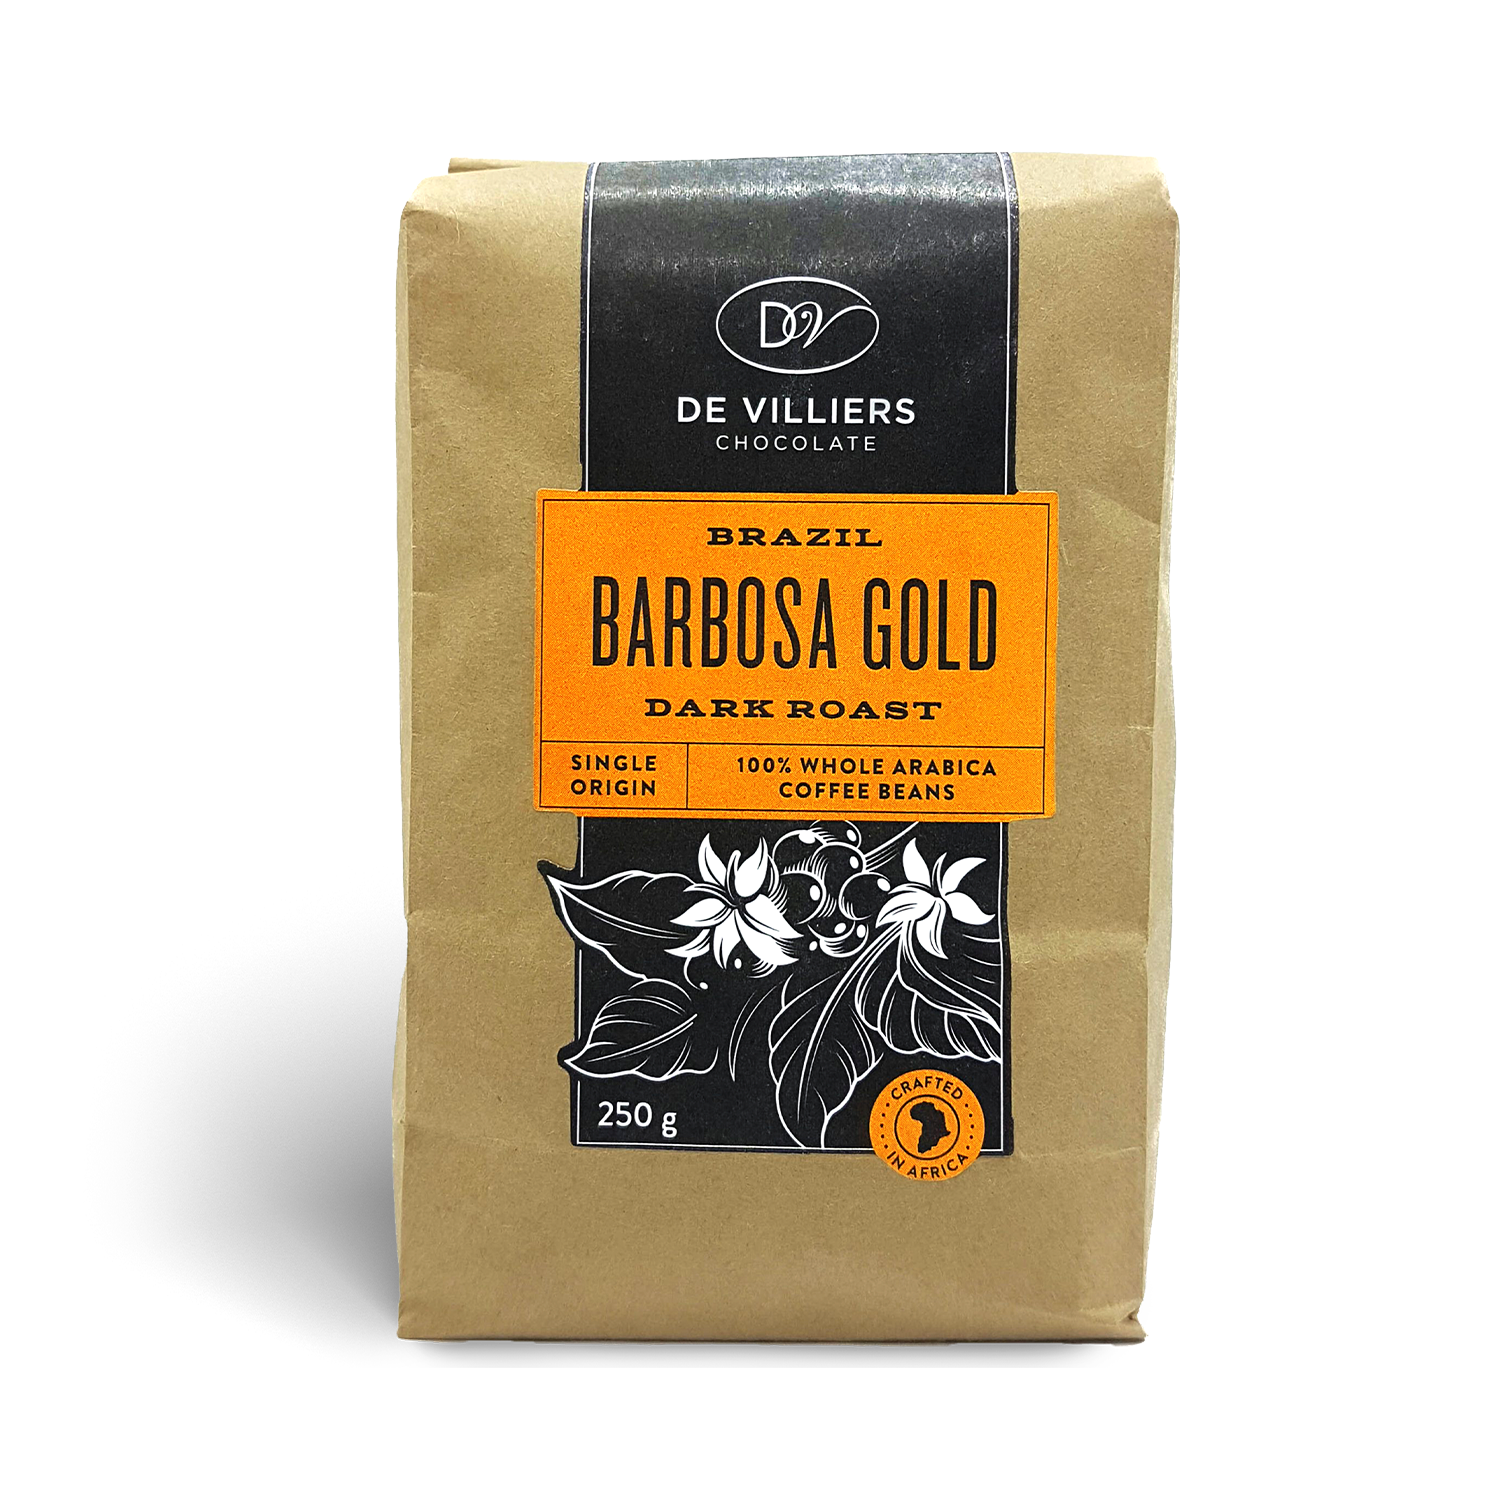 Brazil Barbosa Gold Coffee Beans